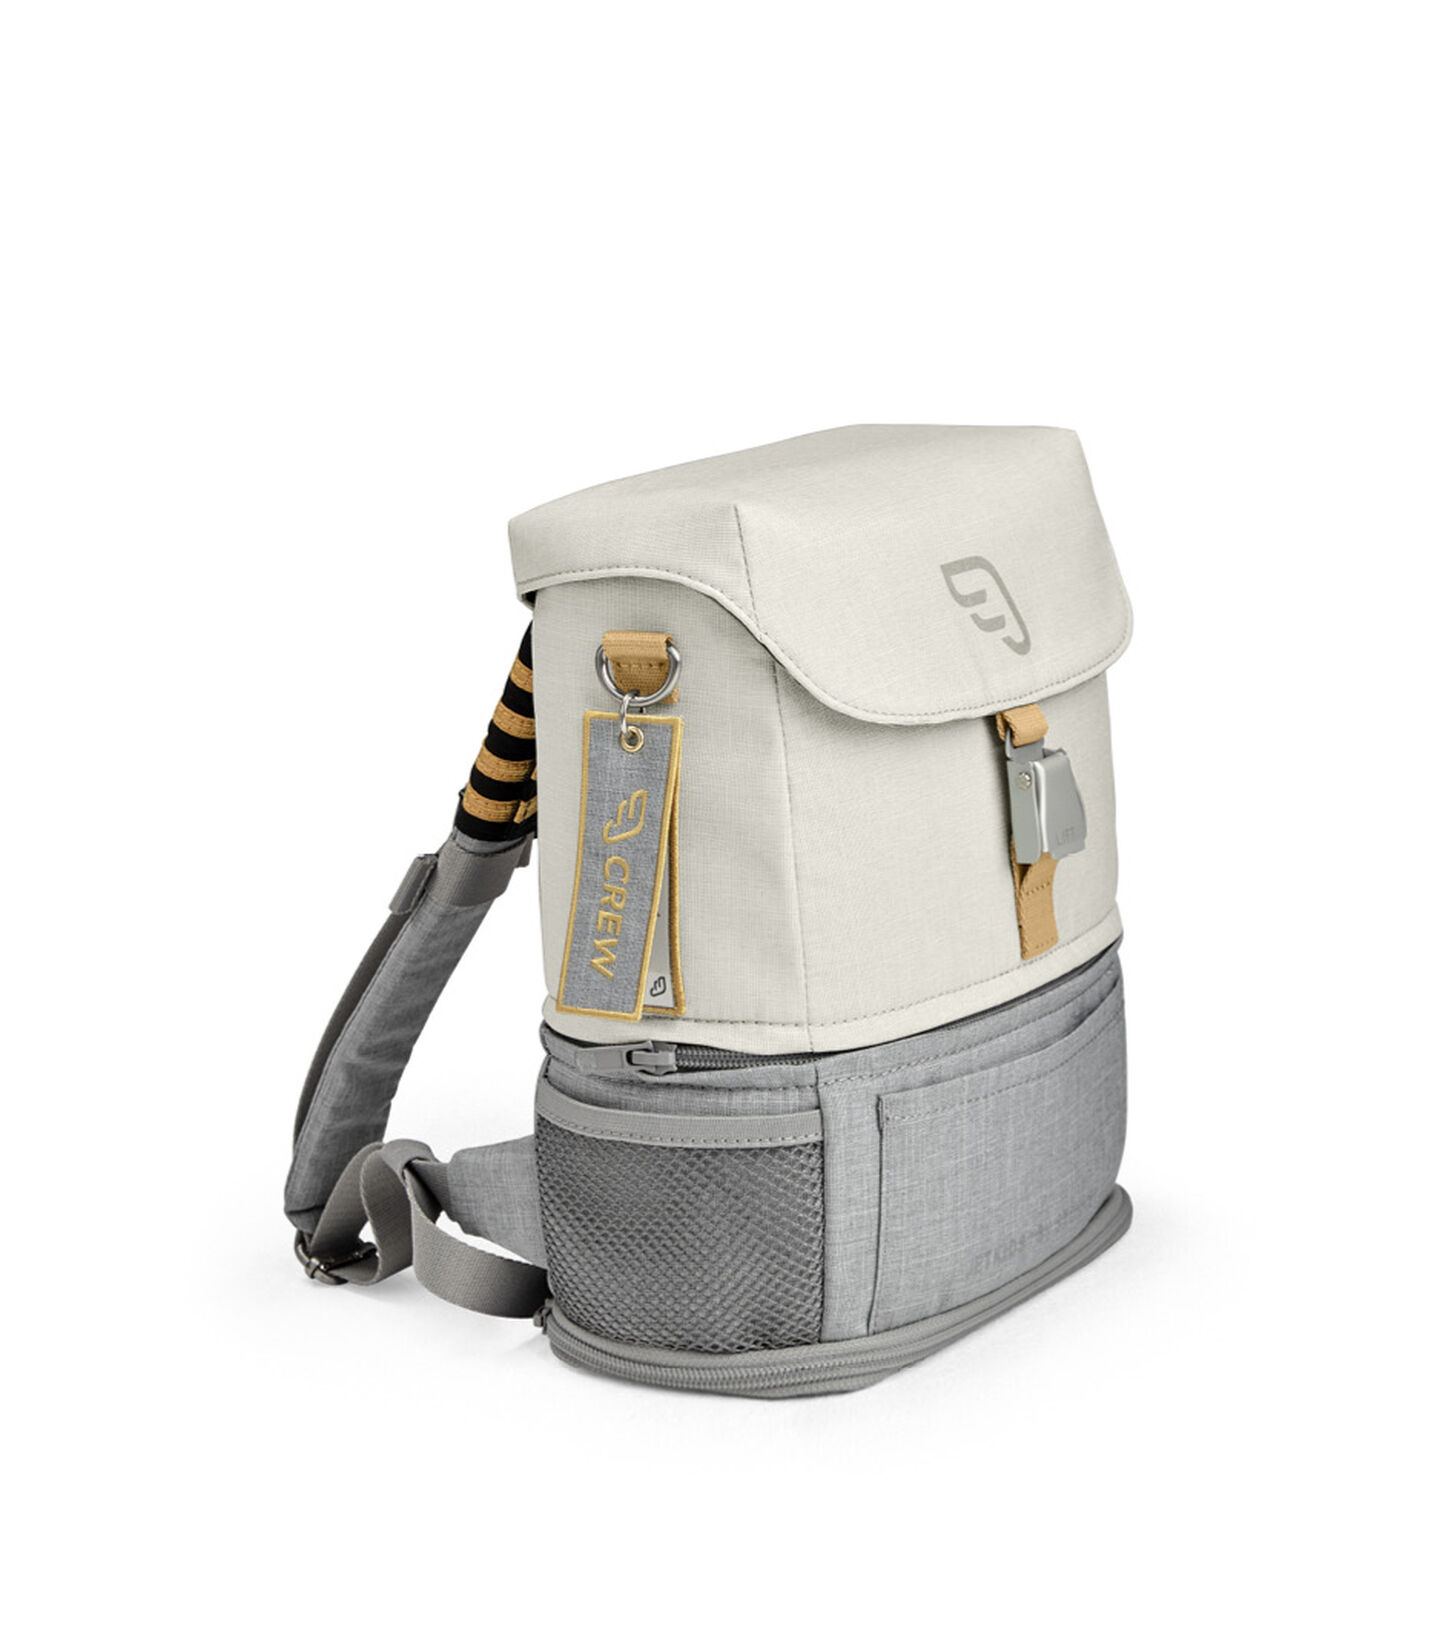 JetKids by Stokke® Crew Backpack Bianco, Bianco, mainview view 1